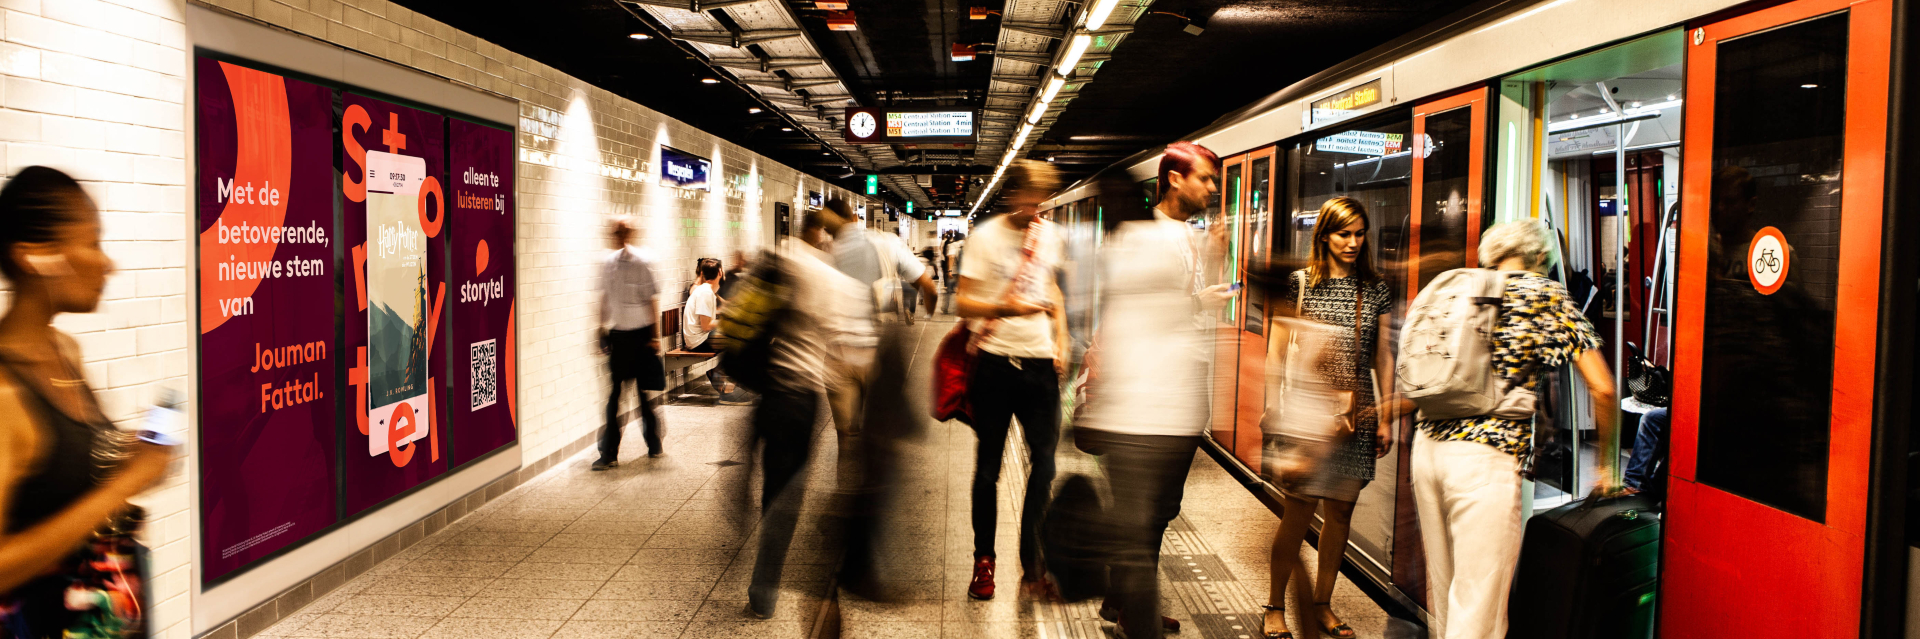 CS Digital Media, Y Media Generation en Storytel brengen audio op metrostations in Amsterdam